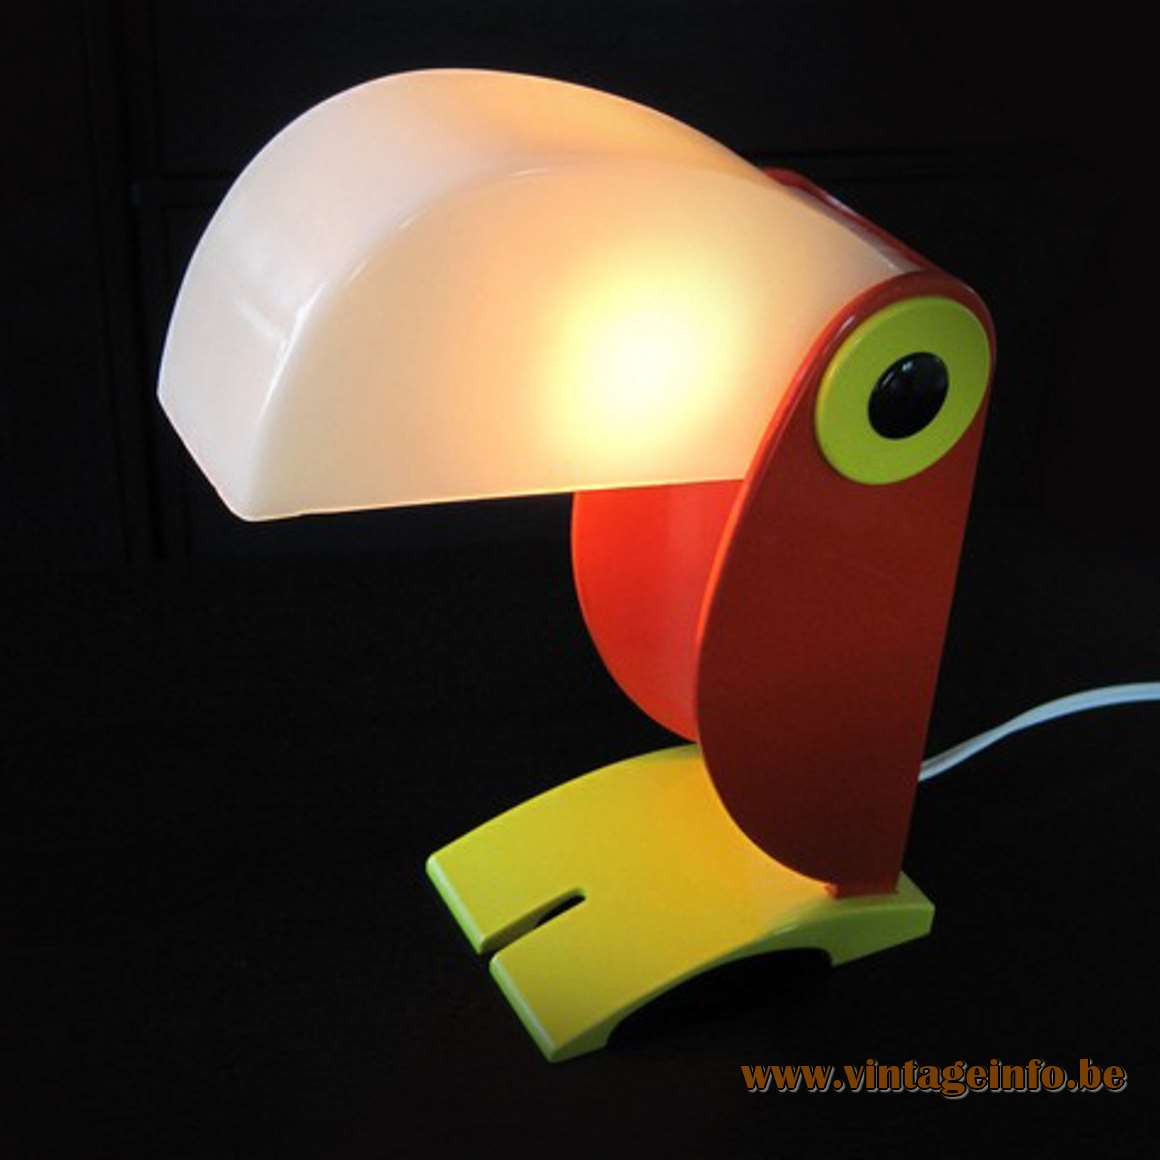 Toucan Table Lamp - Old Timer Ferrari - Red